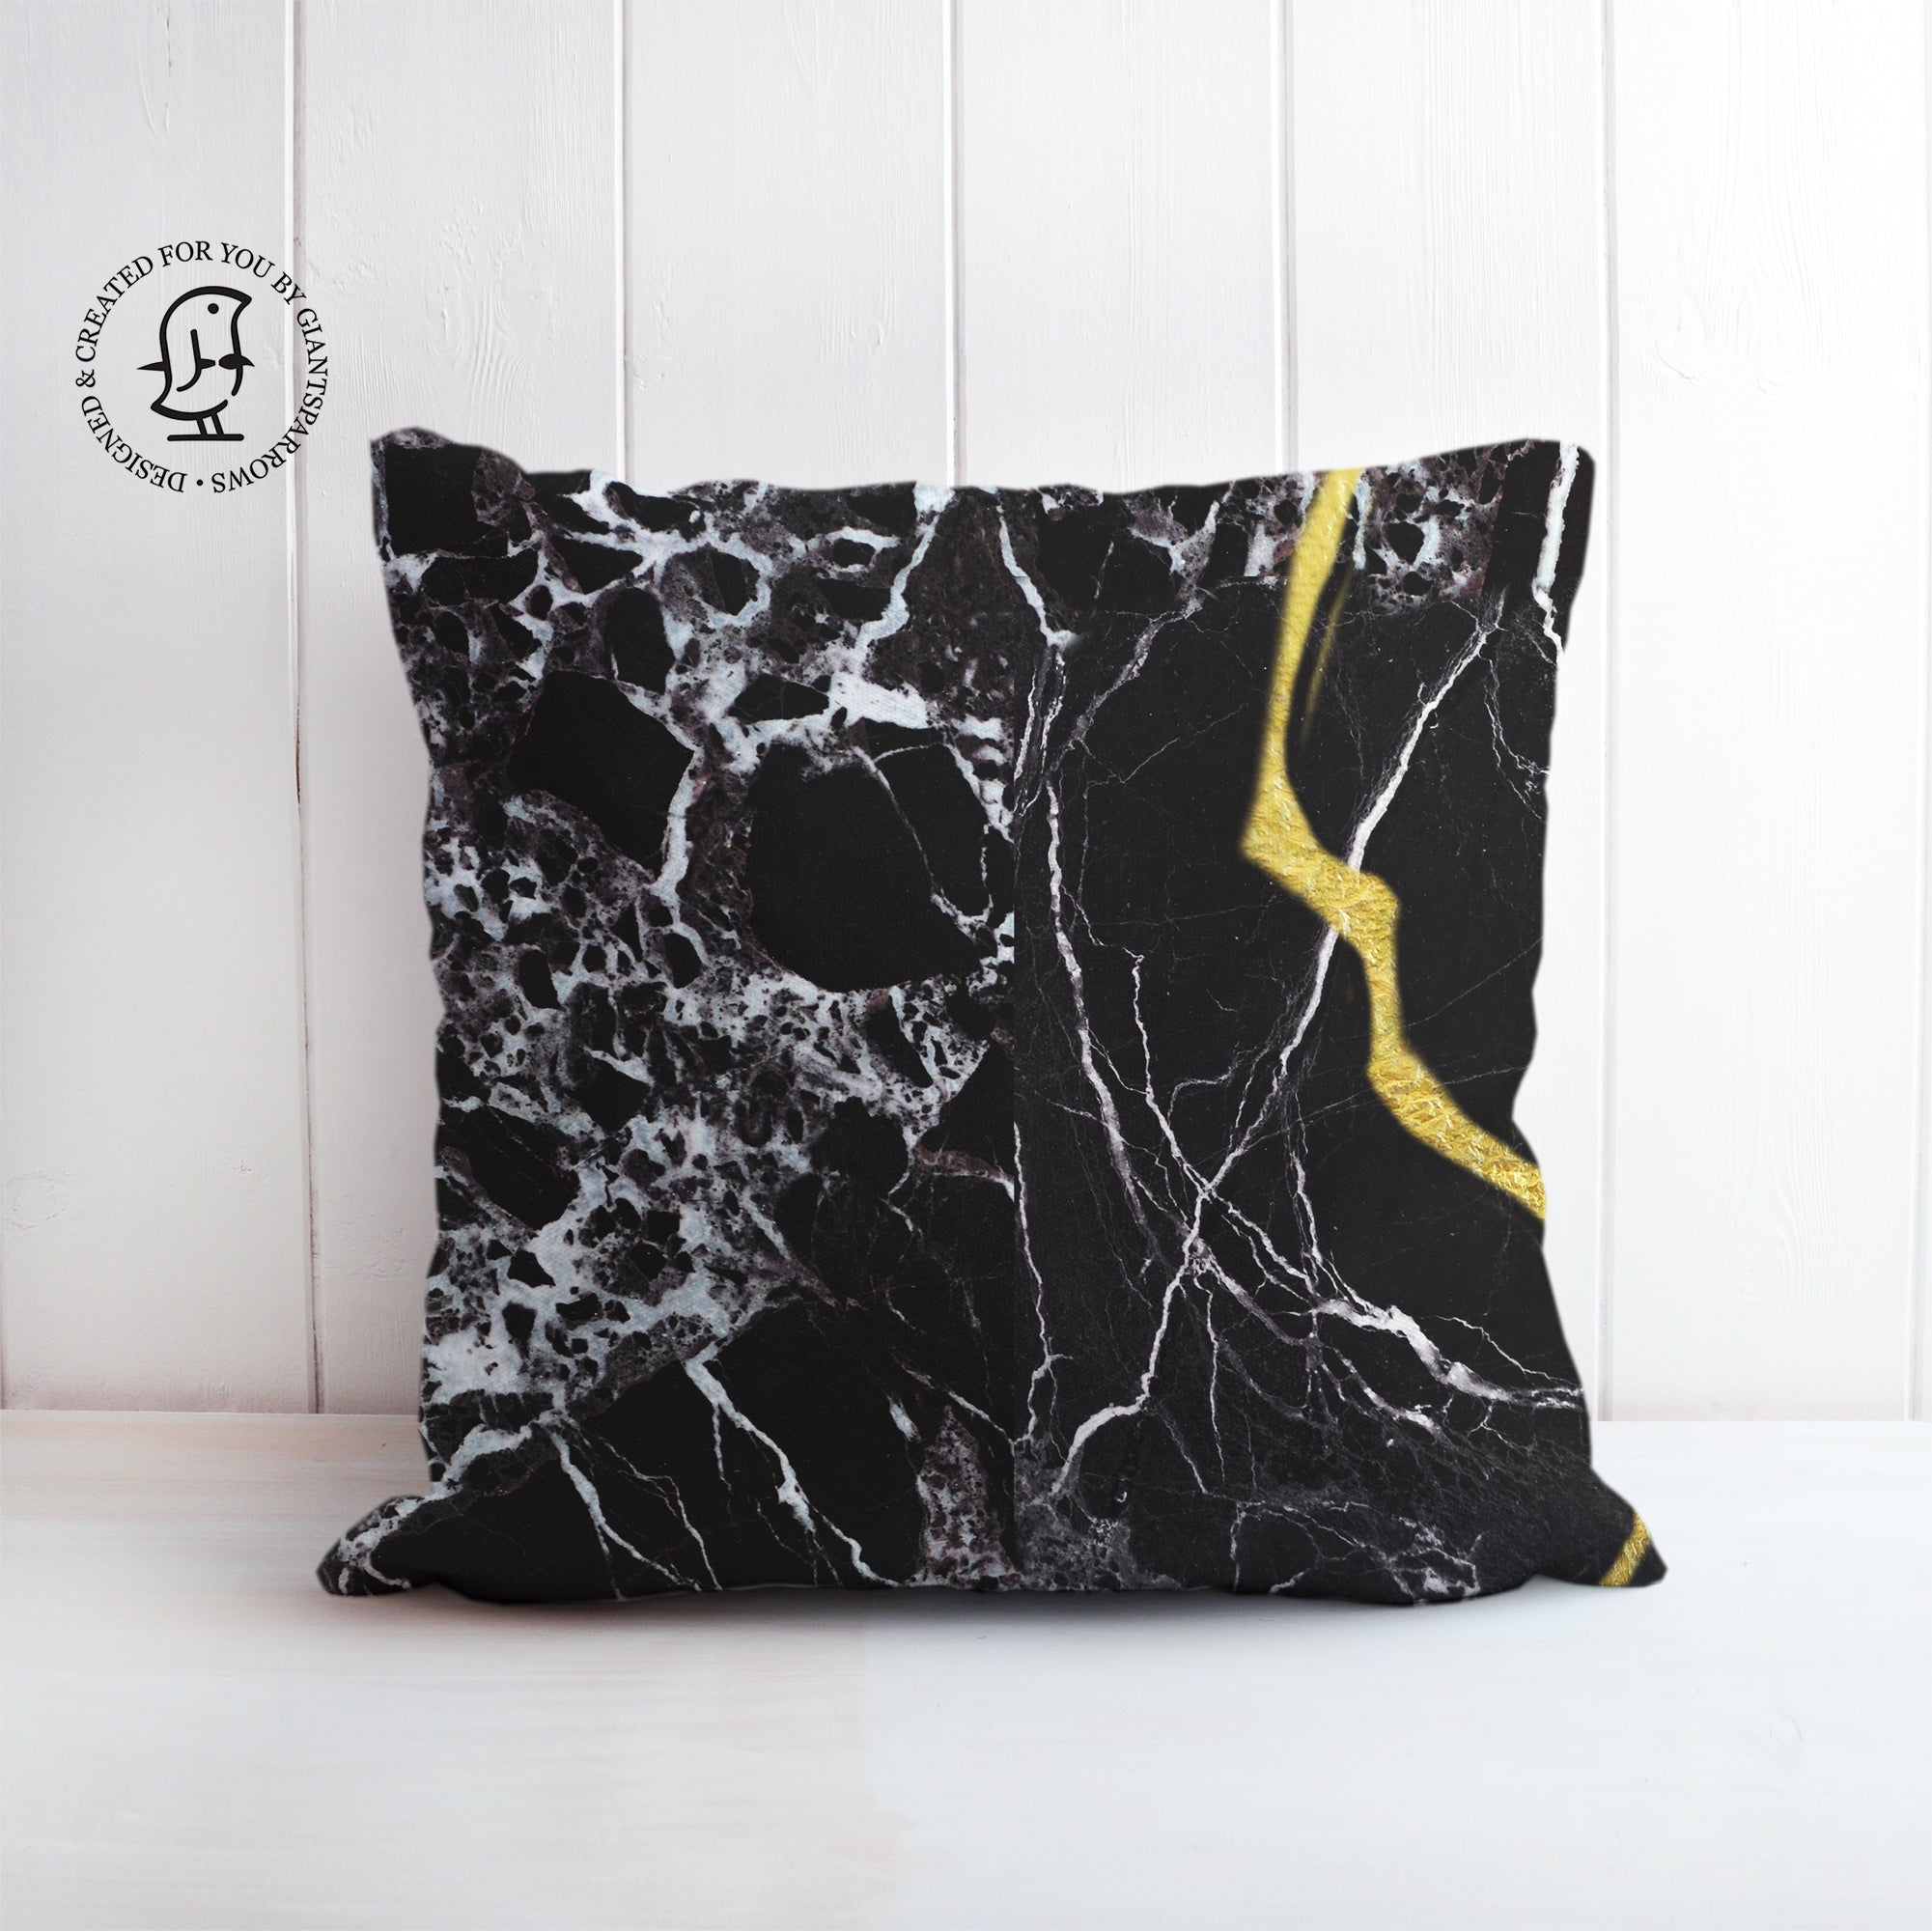 Black Marble with Gold Details - Inspired by the Art of Kintsugi Cushion